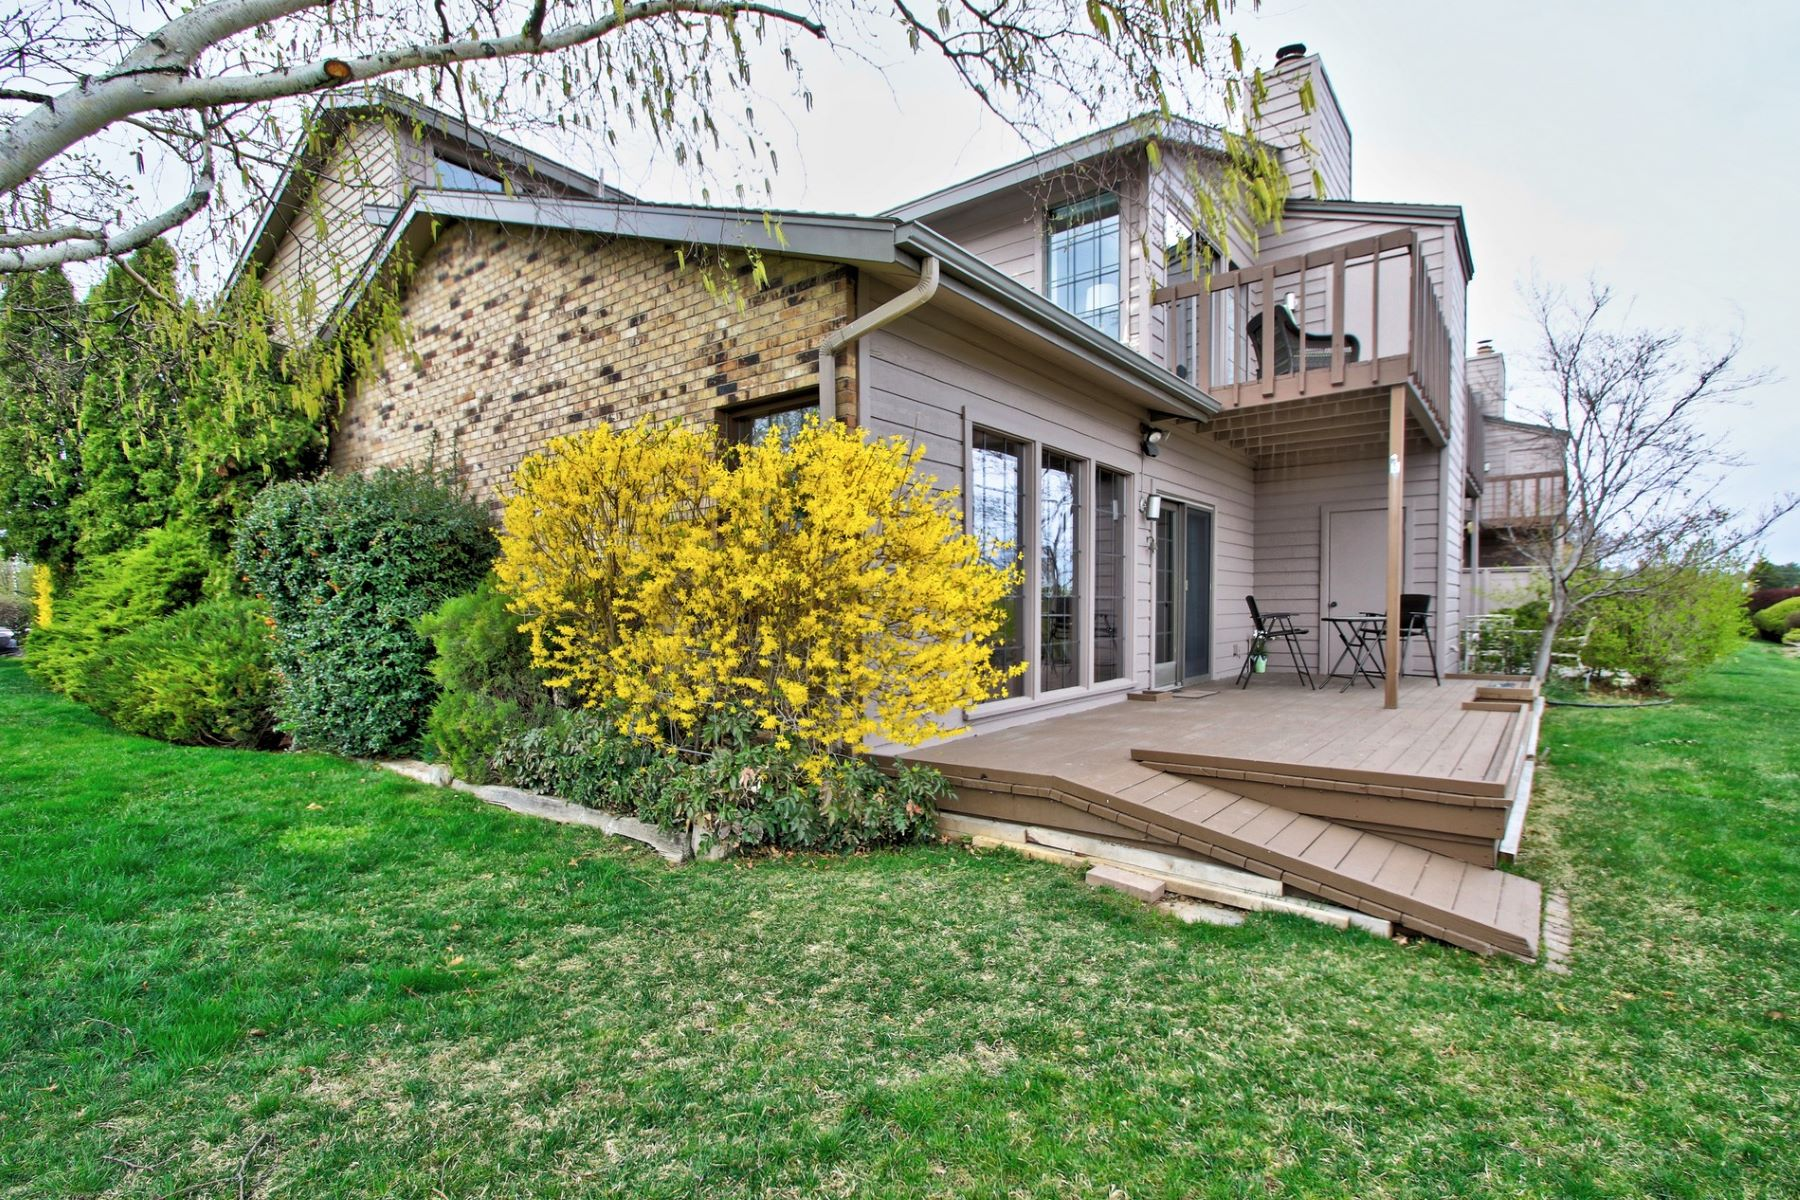 Additional photo for property listing at 3076 Catalina Ln., Boise 3076 W Catalina Ln Boise, Idaho 83705